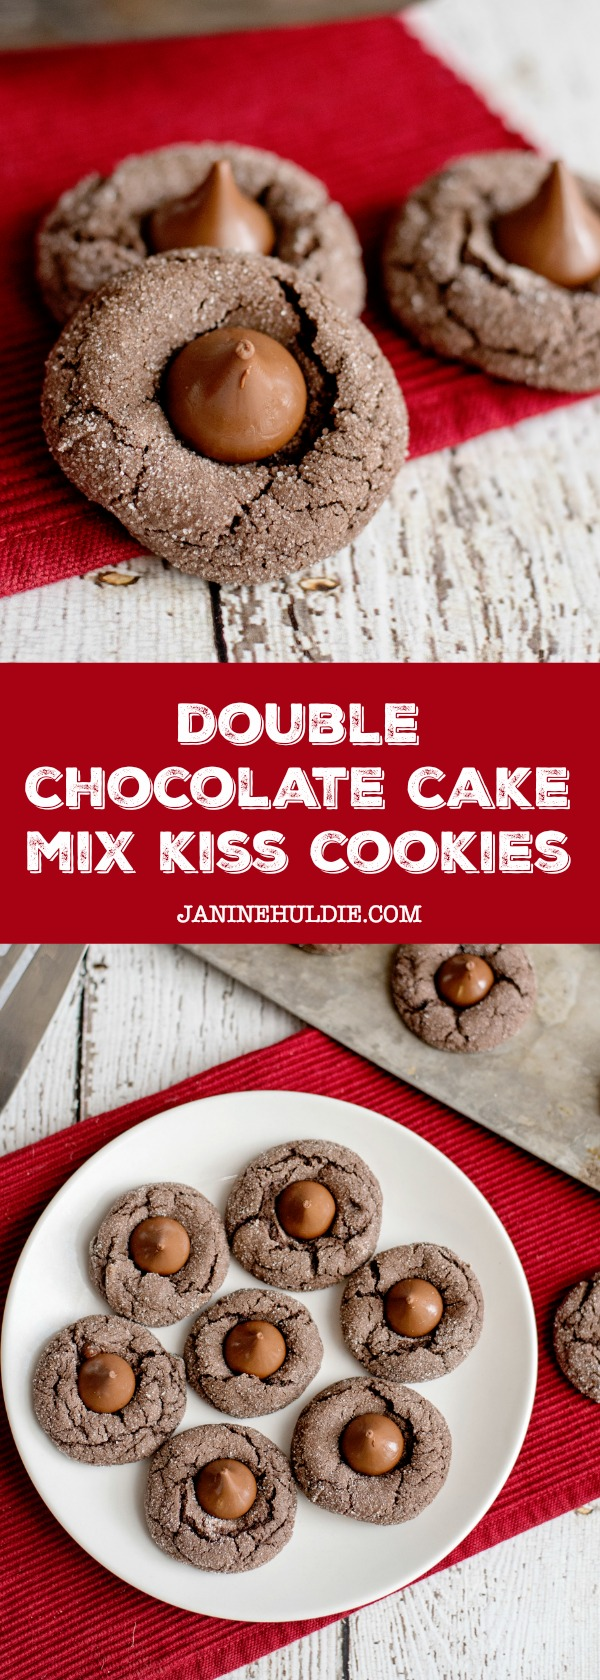 Double Chocolate Cake Mix Kiss Cookies Recipe